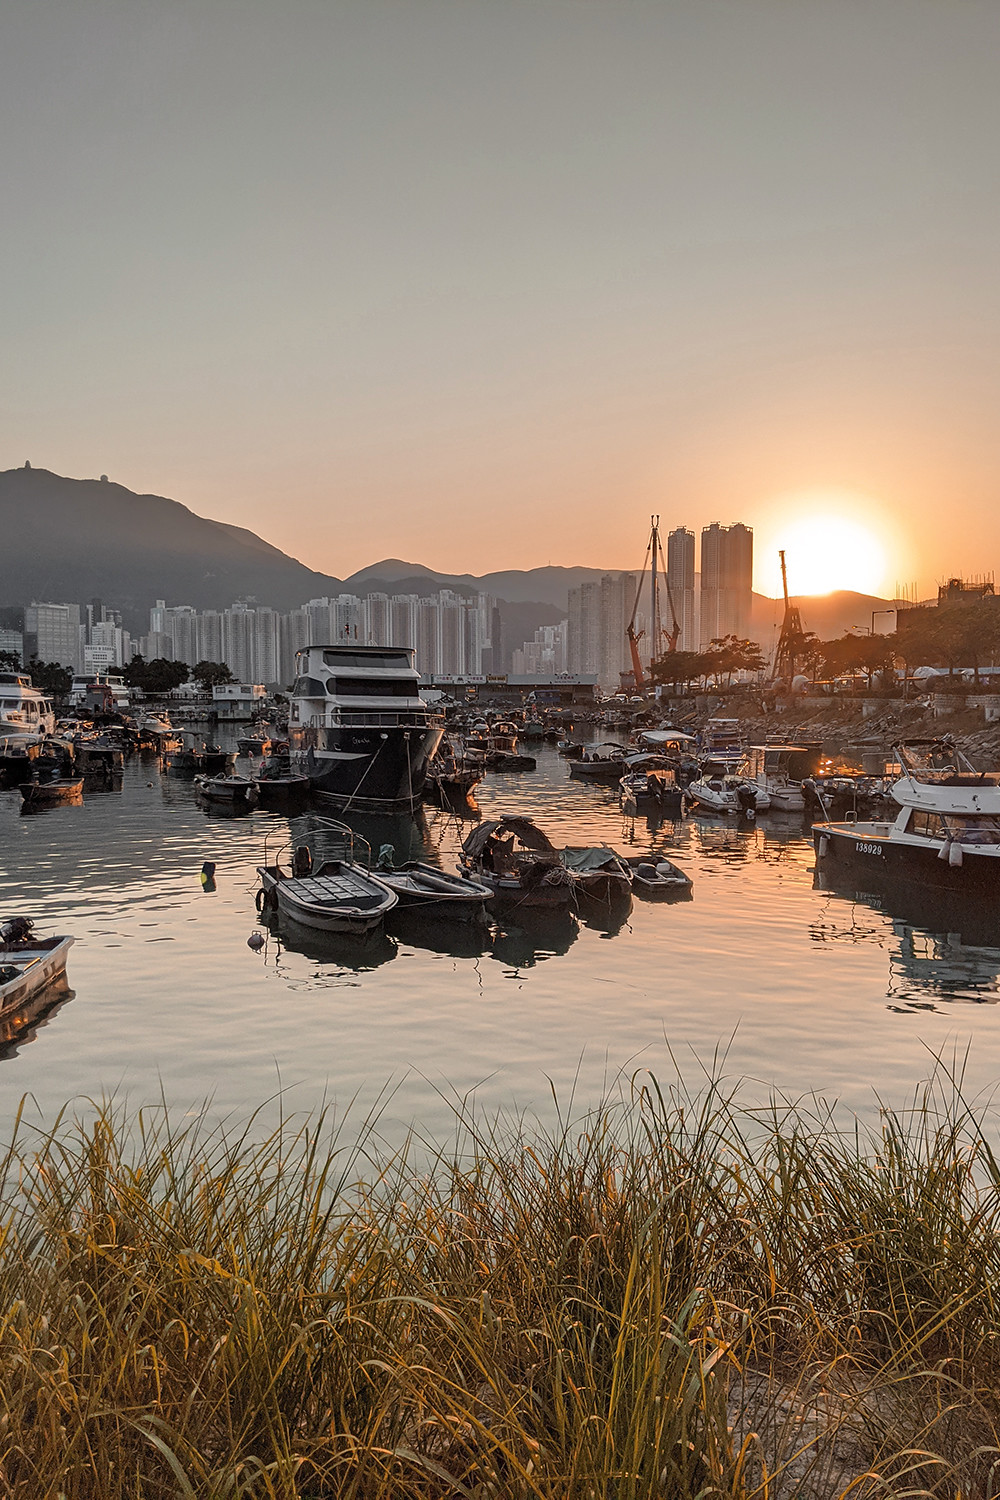 34hongkong-leiyuemun-seaside-travel